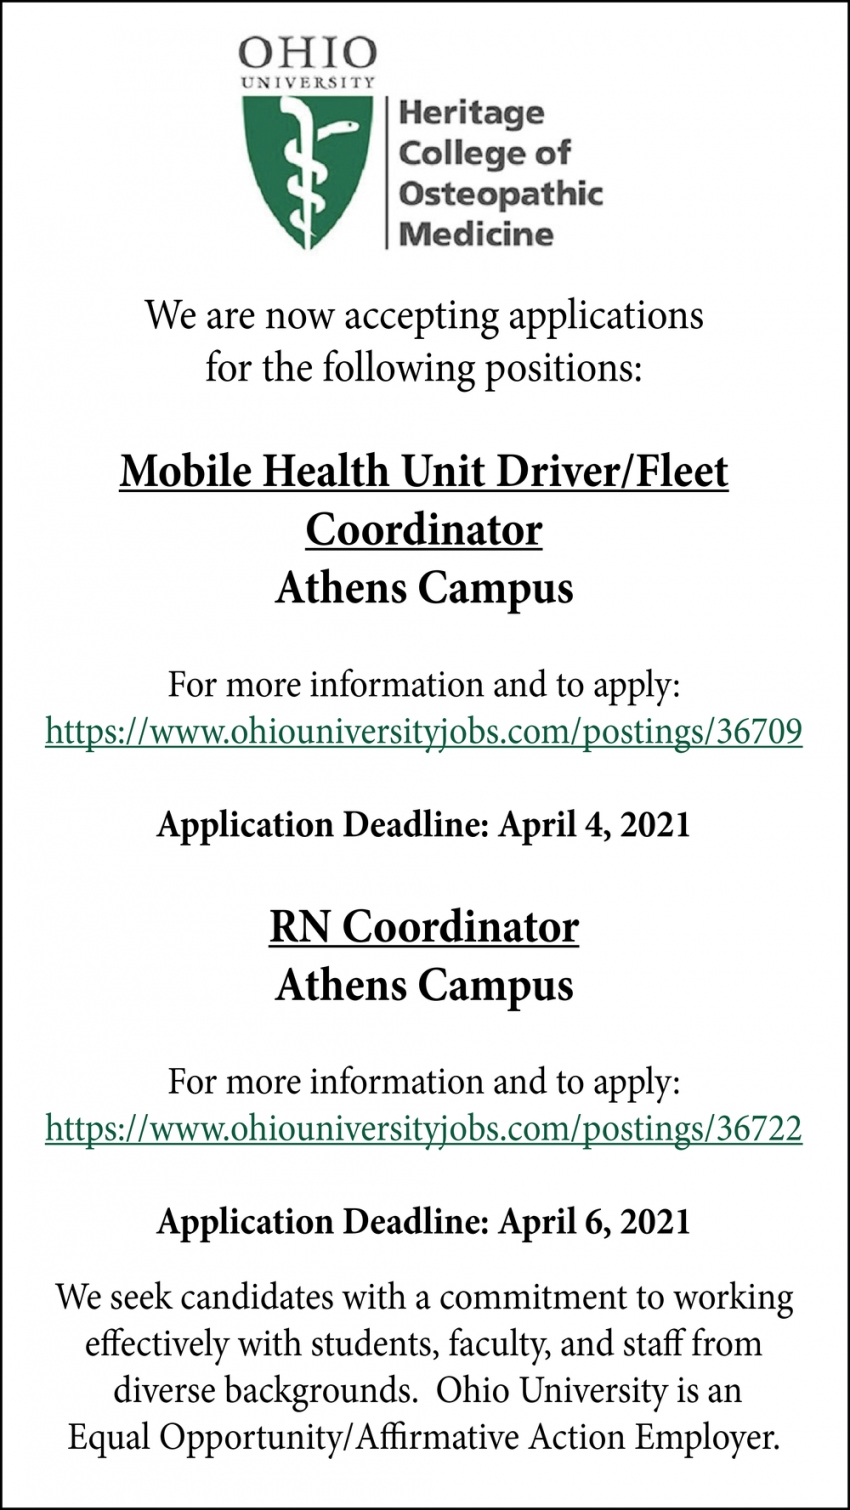 Mobile Health Unit Driver/Fleet Coordinator